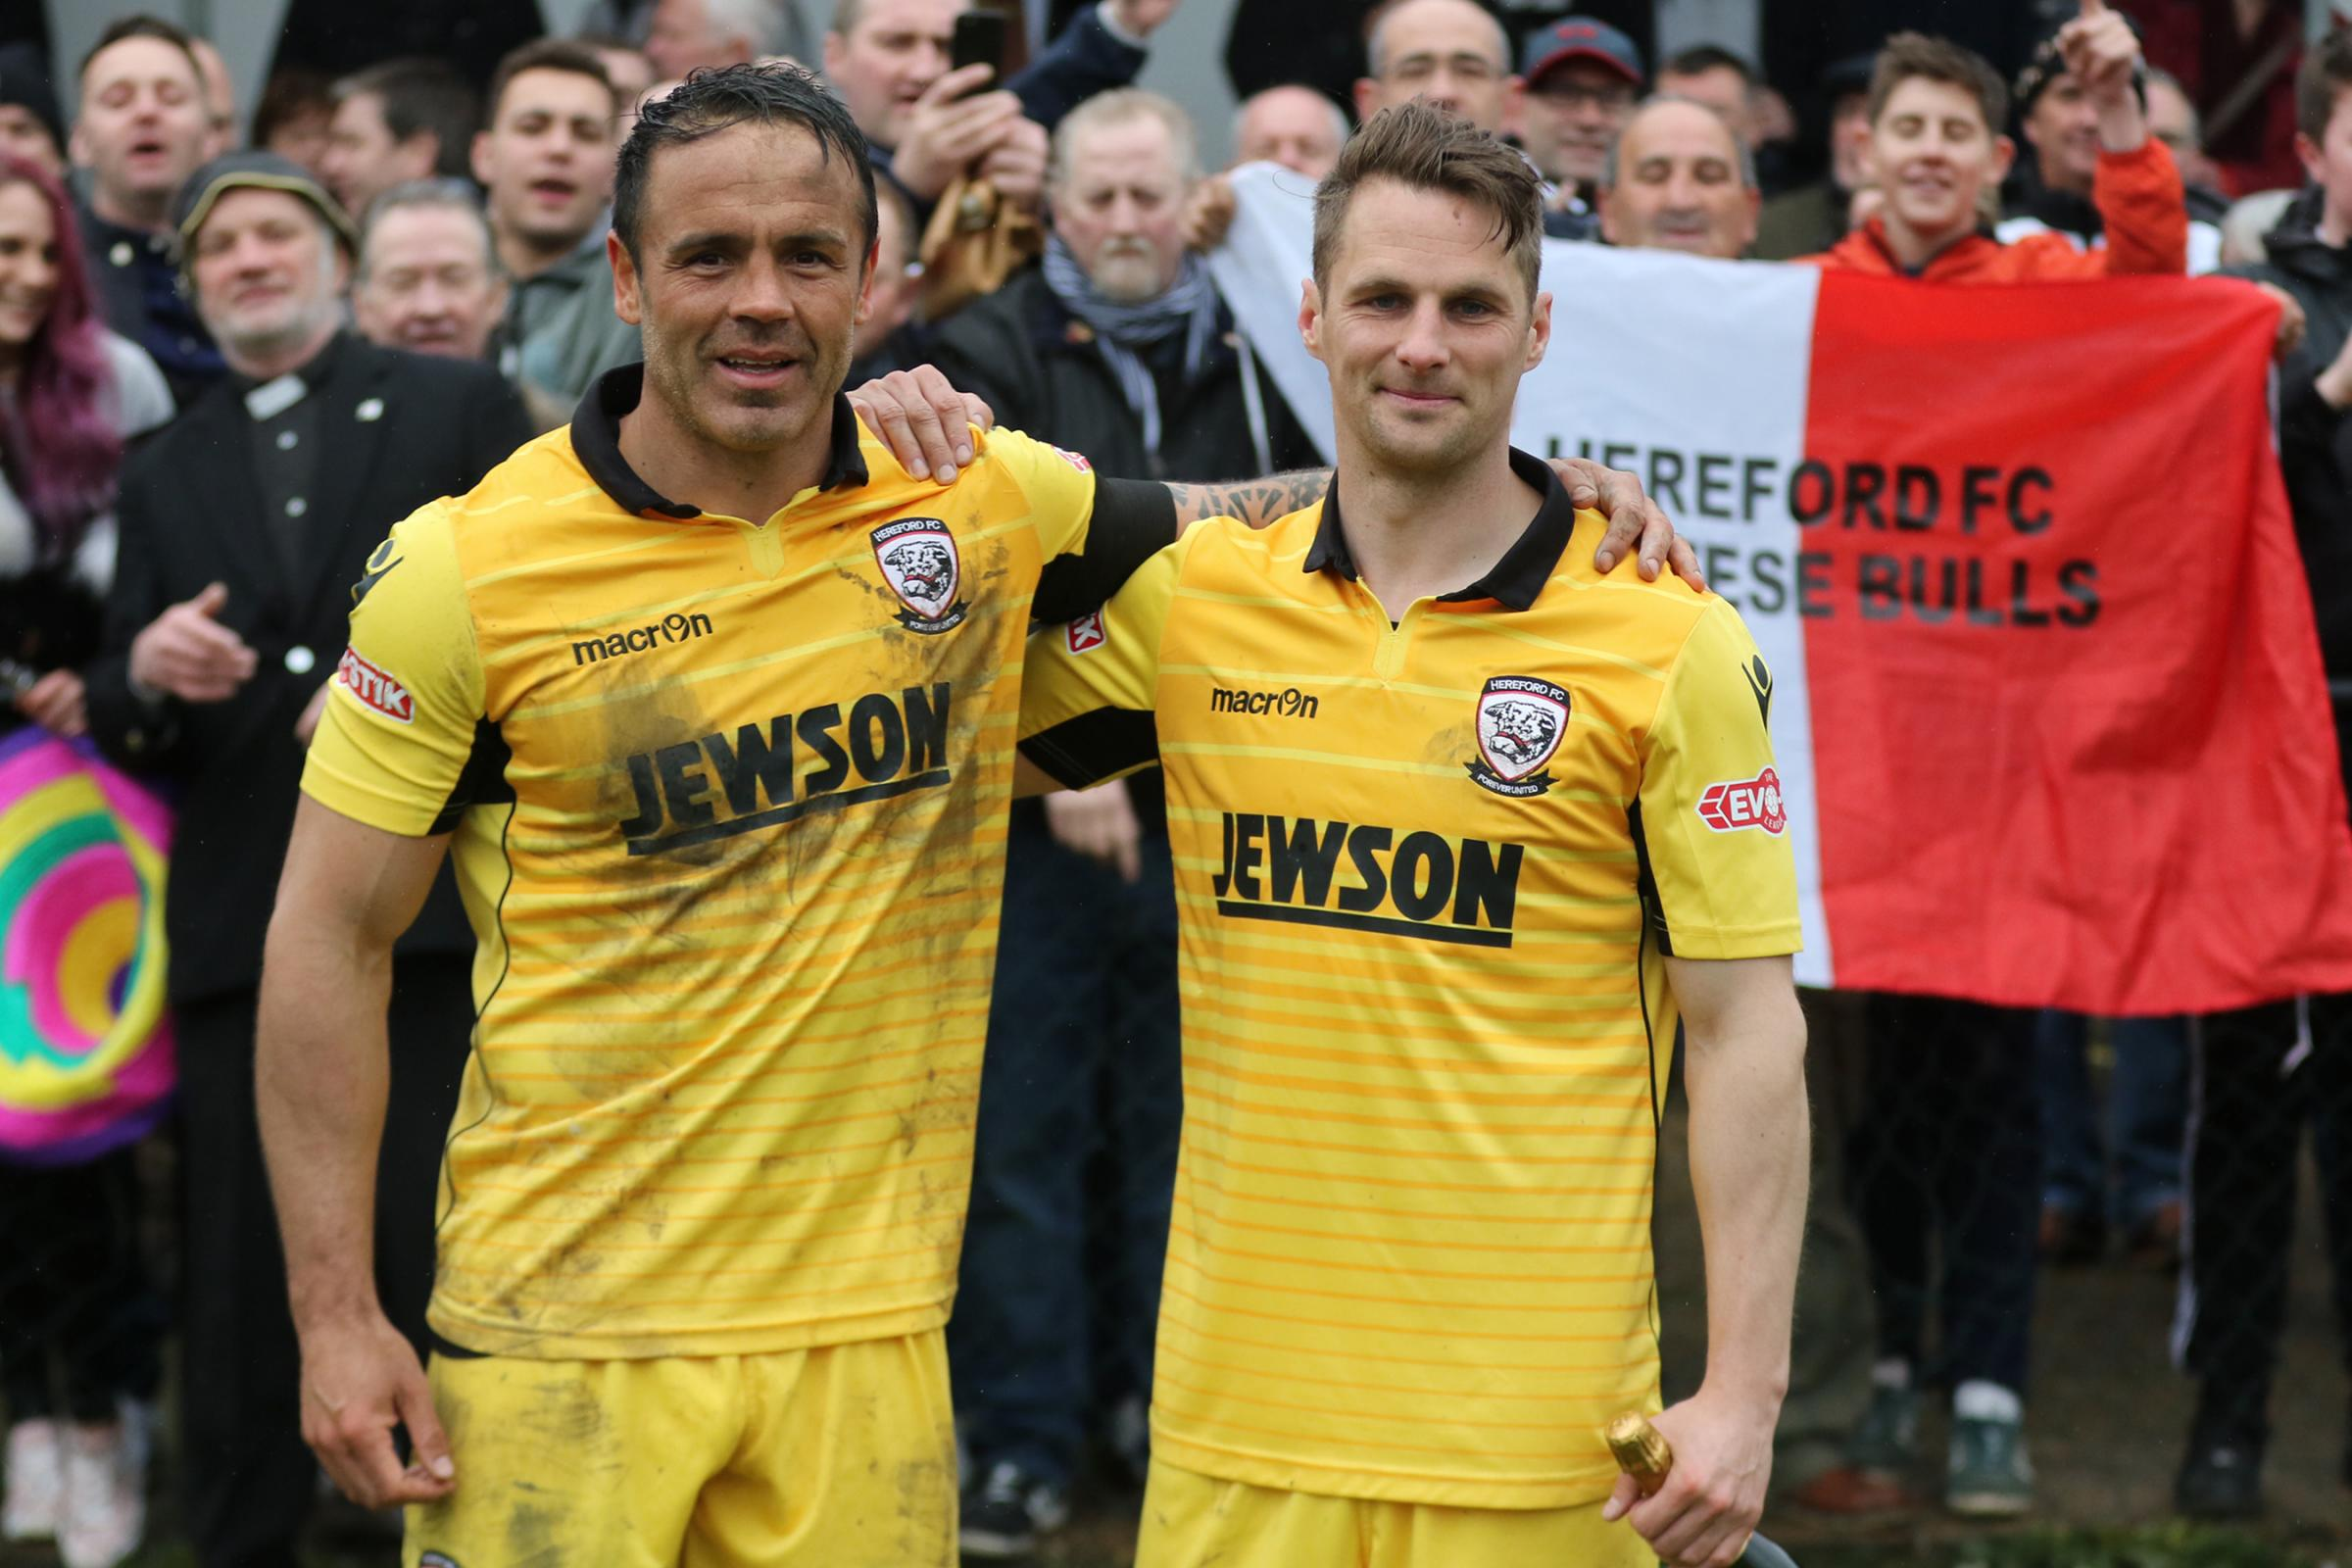 Hereford legends Ryan Green and Rob Purdie. Picture: Steve Niblett/Hereford FC